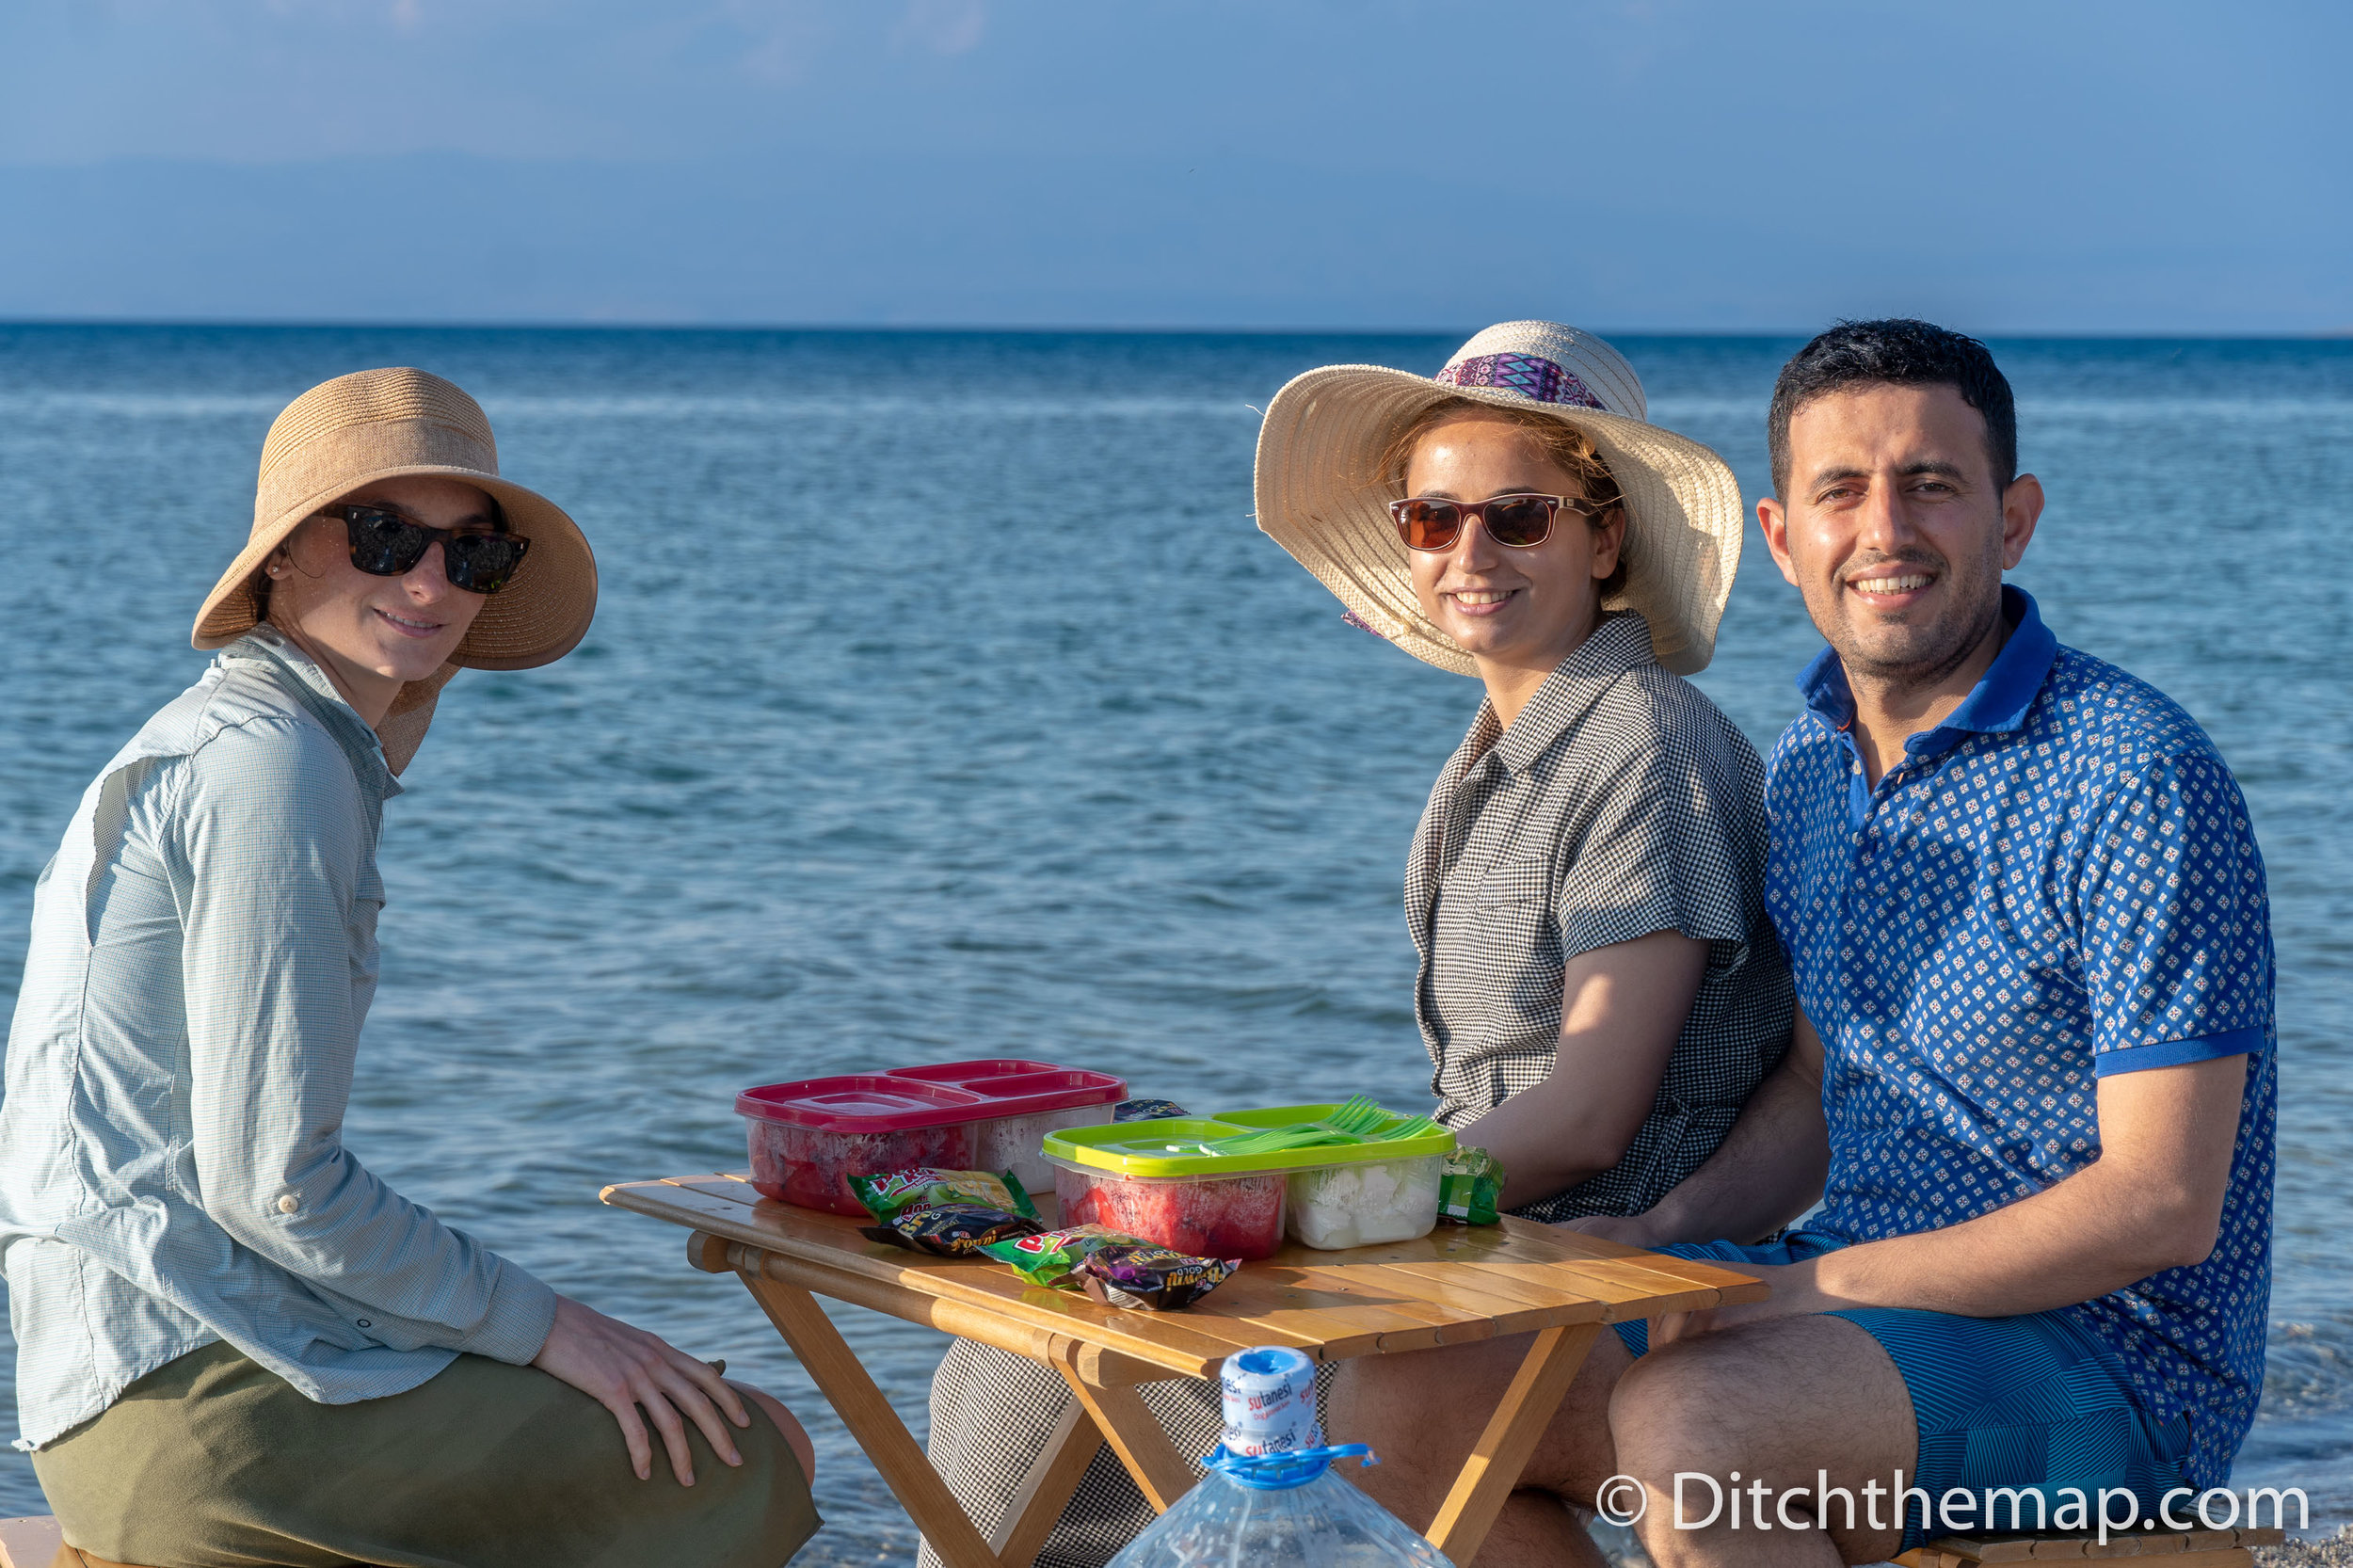 Enjoying a Snack with Our Friends at Lake Van, Turkey